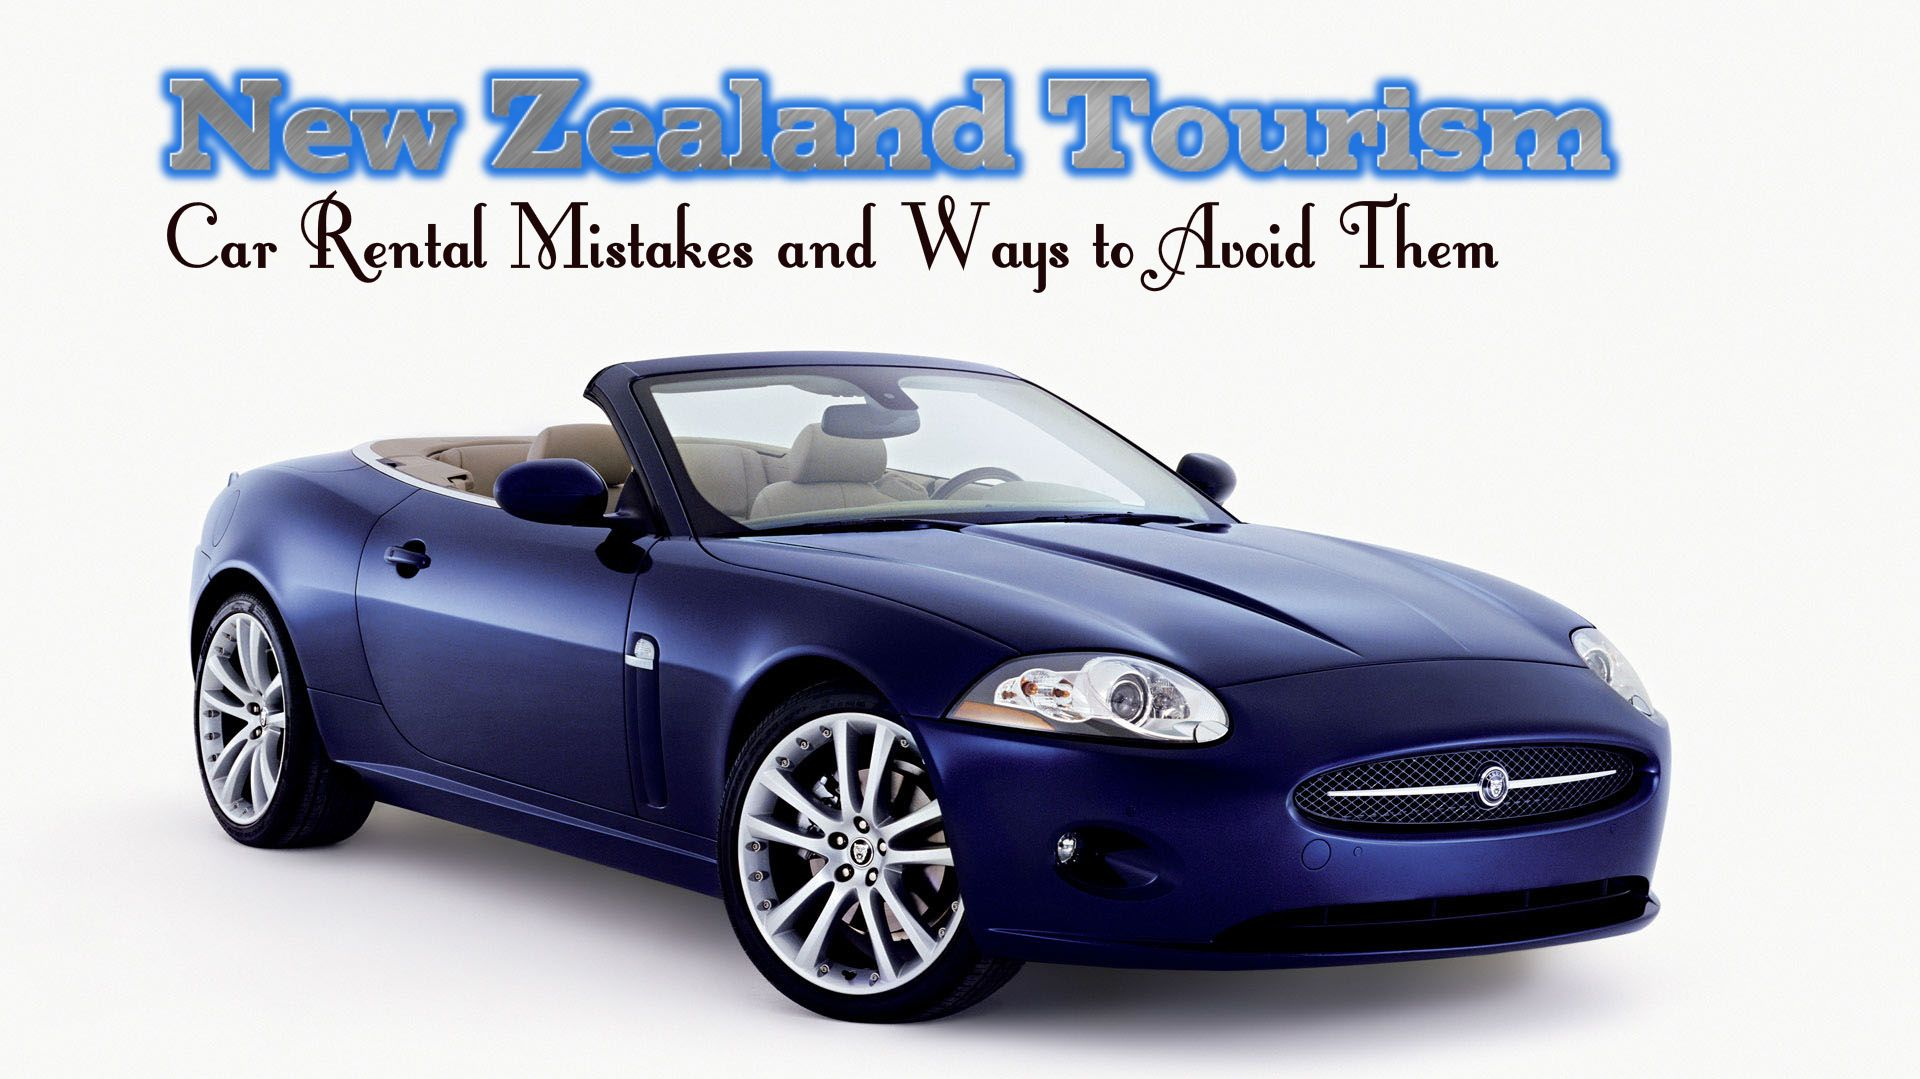 Trusted Auckland Car Rental Options Car Rental New Zealand Car